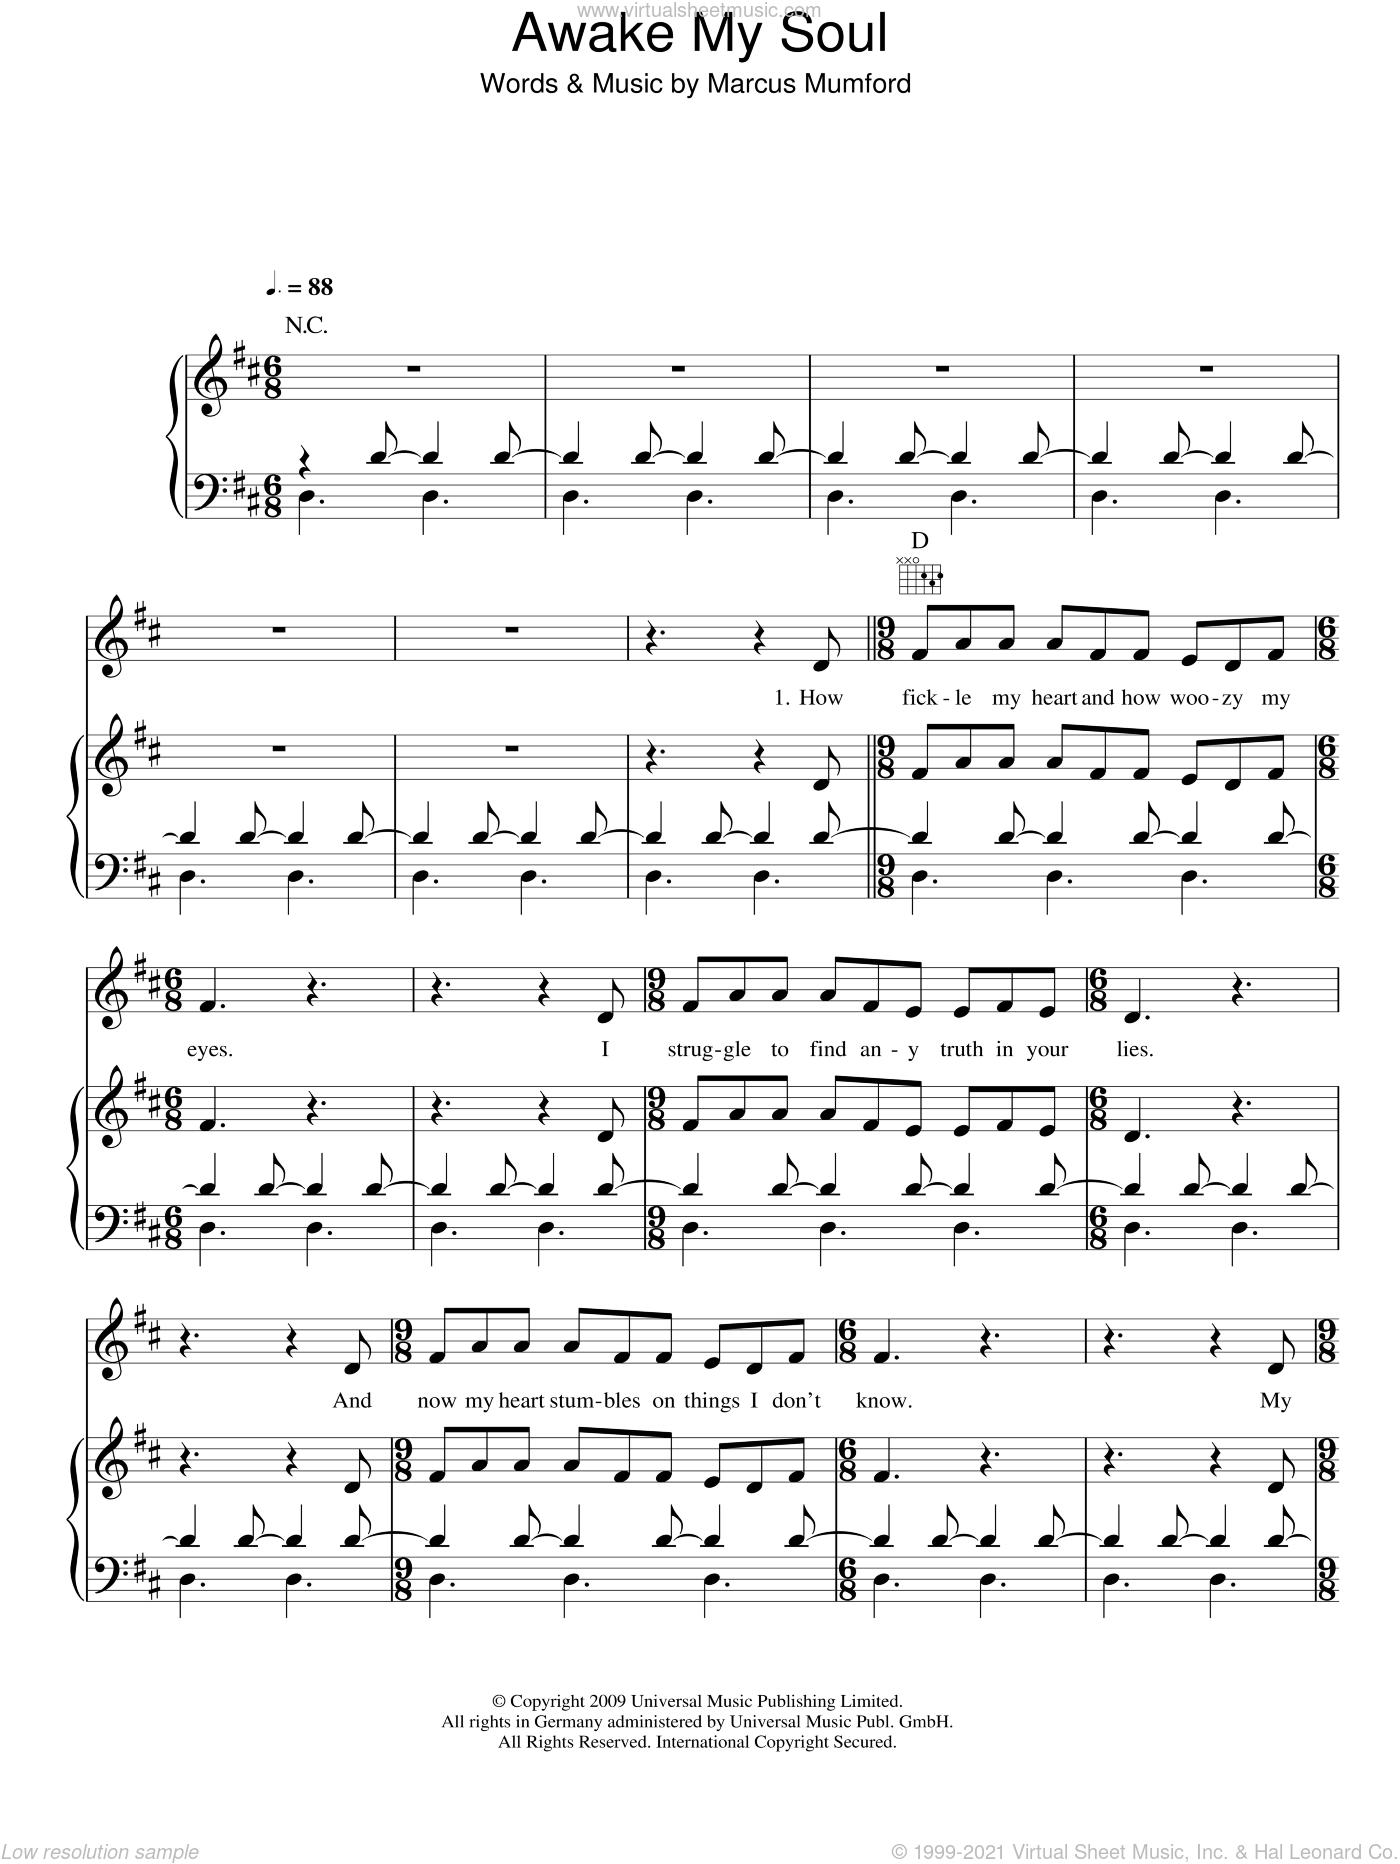 Awake My Soul sheet music for voice, piano or guitar by Marcus Mumford